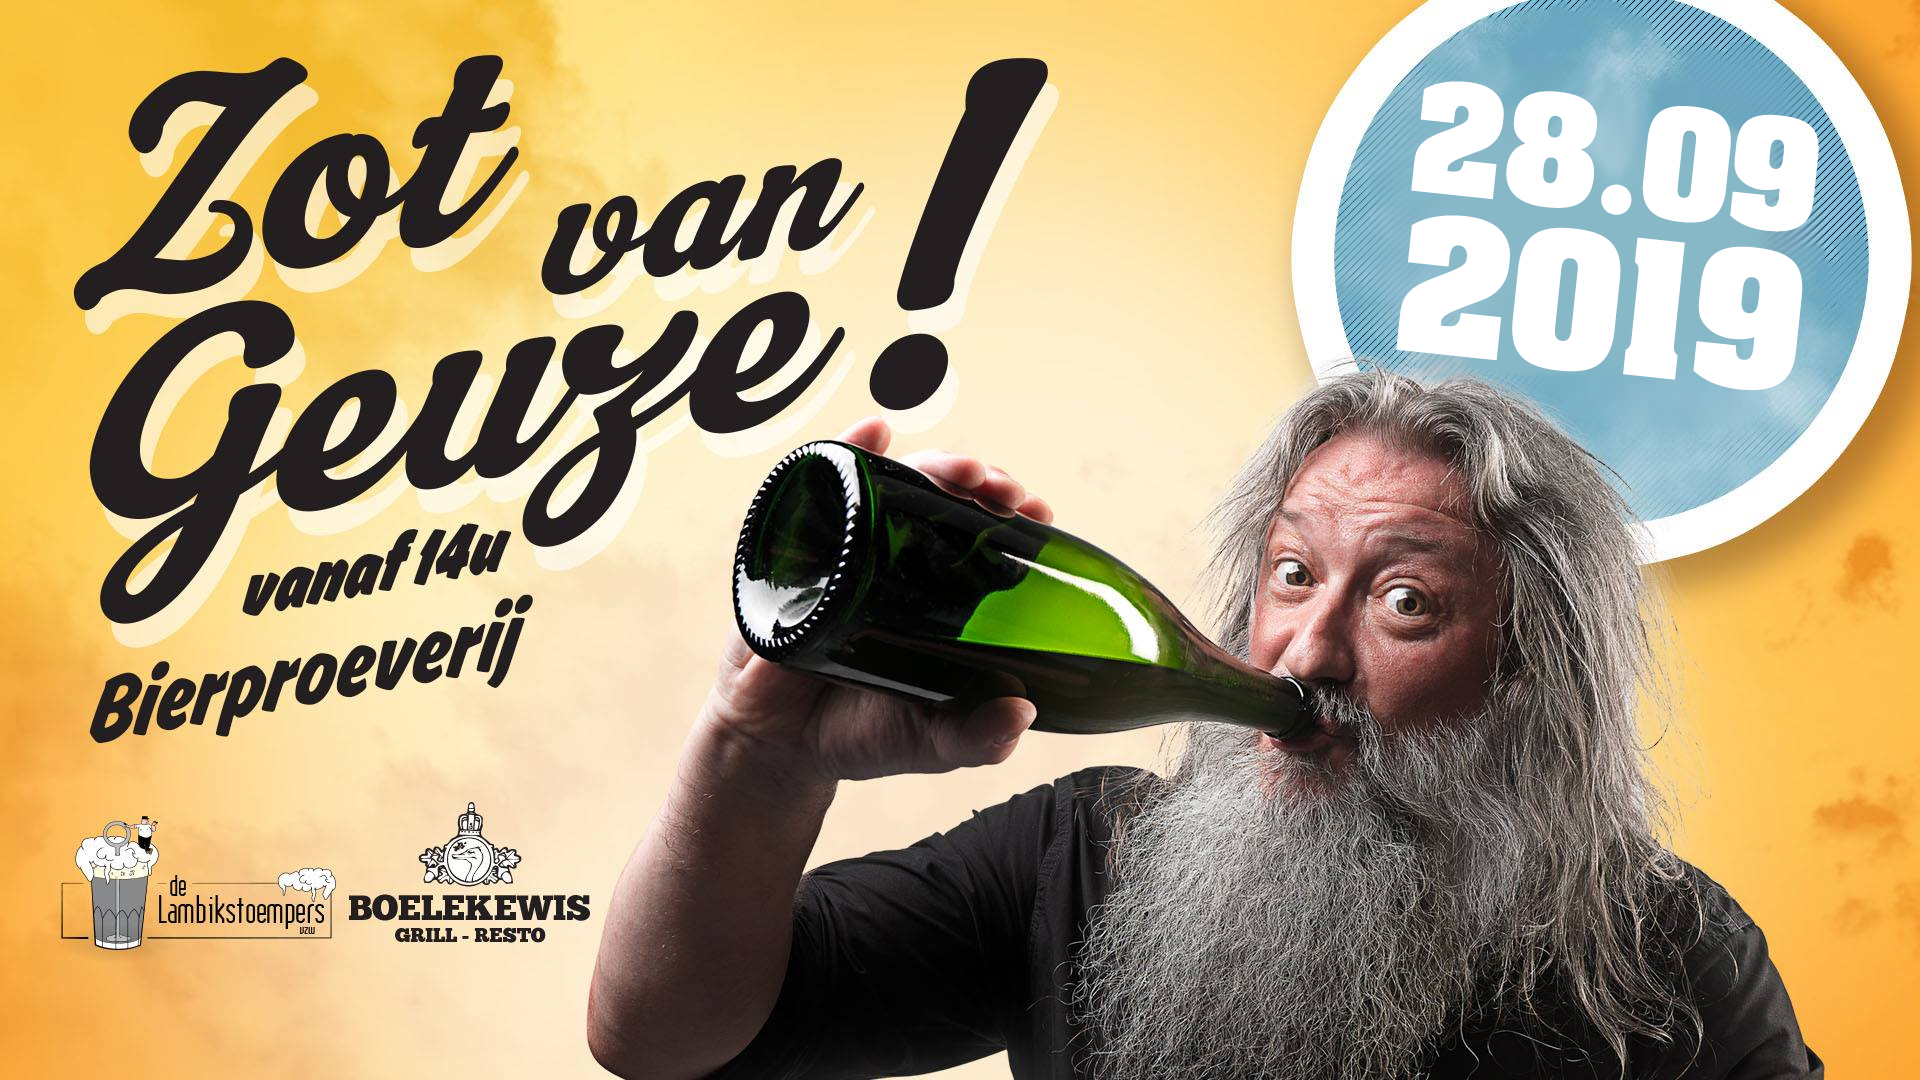 Crazy about Gueuze! 2019